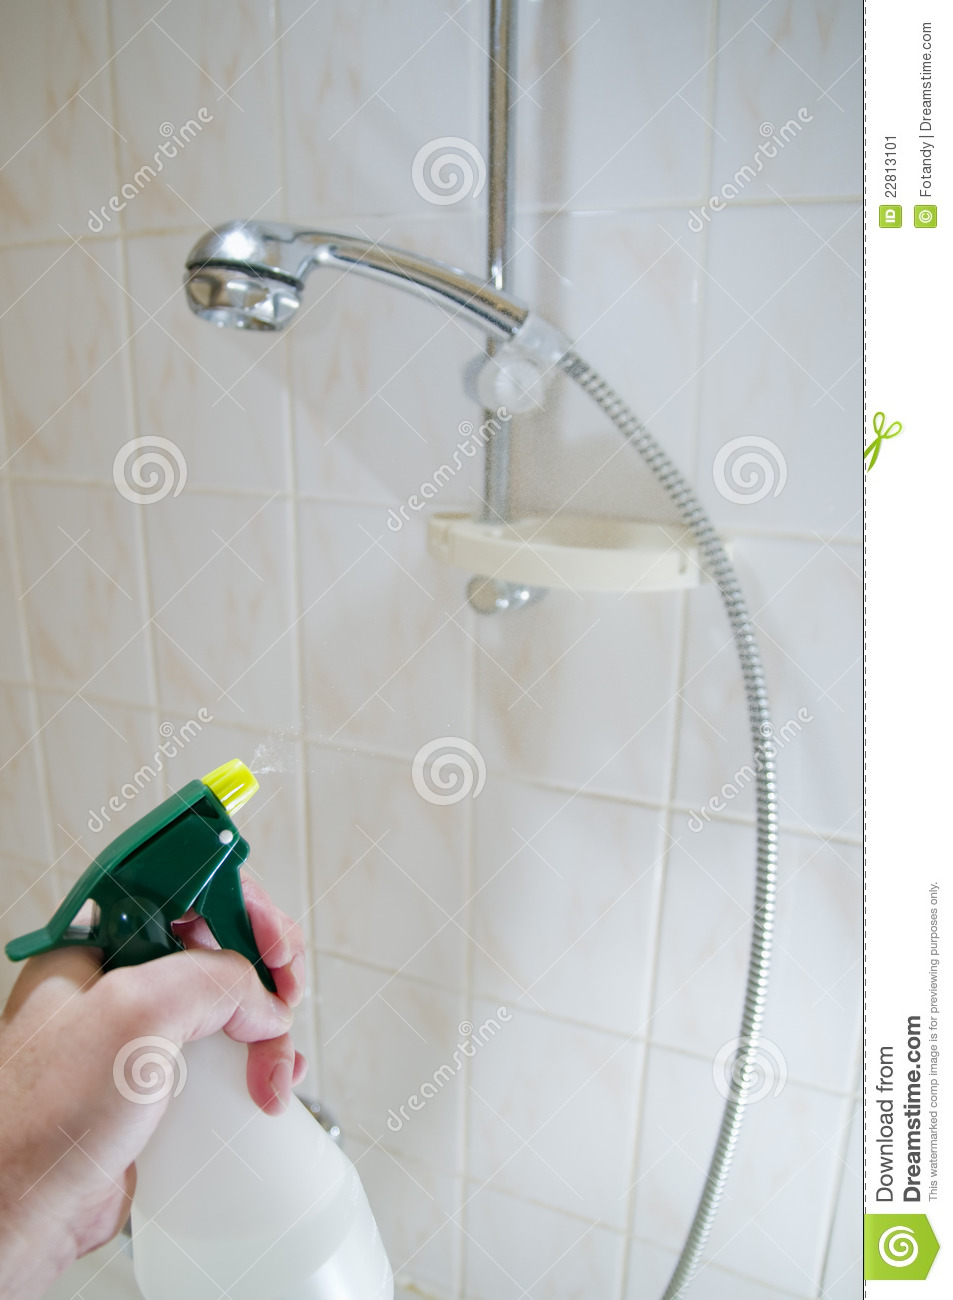 Cleaning Tile Shower Walls Stock Image Image Of Tiled